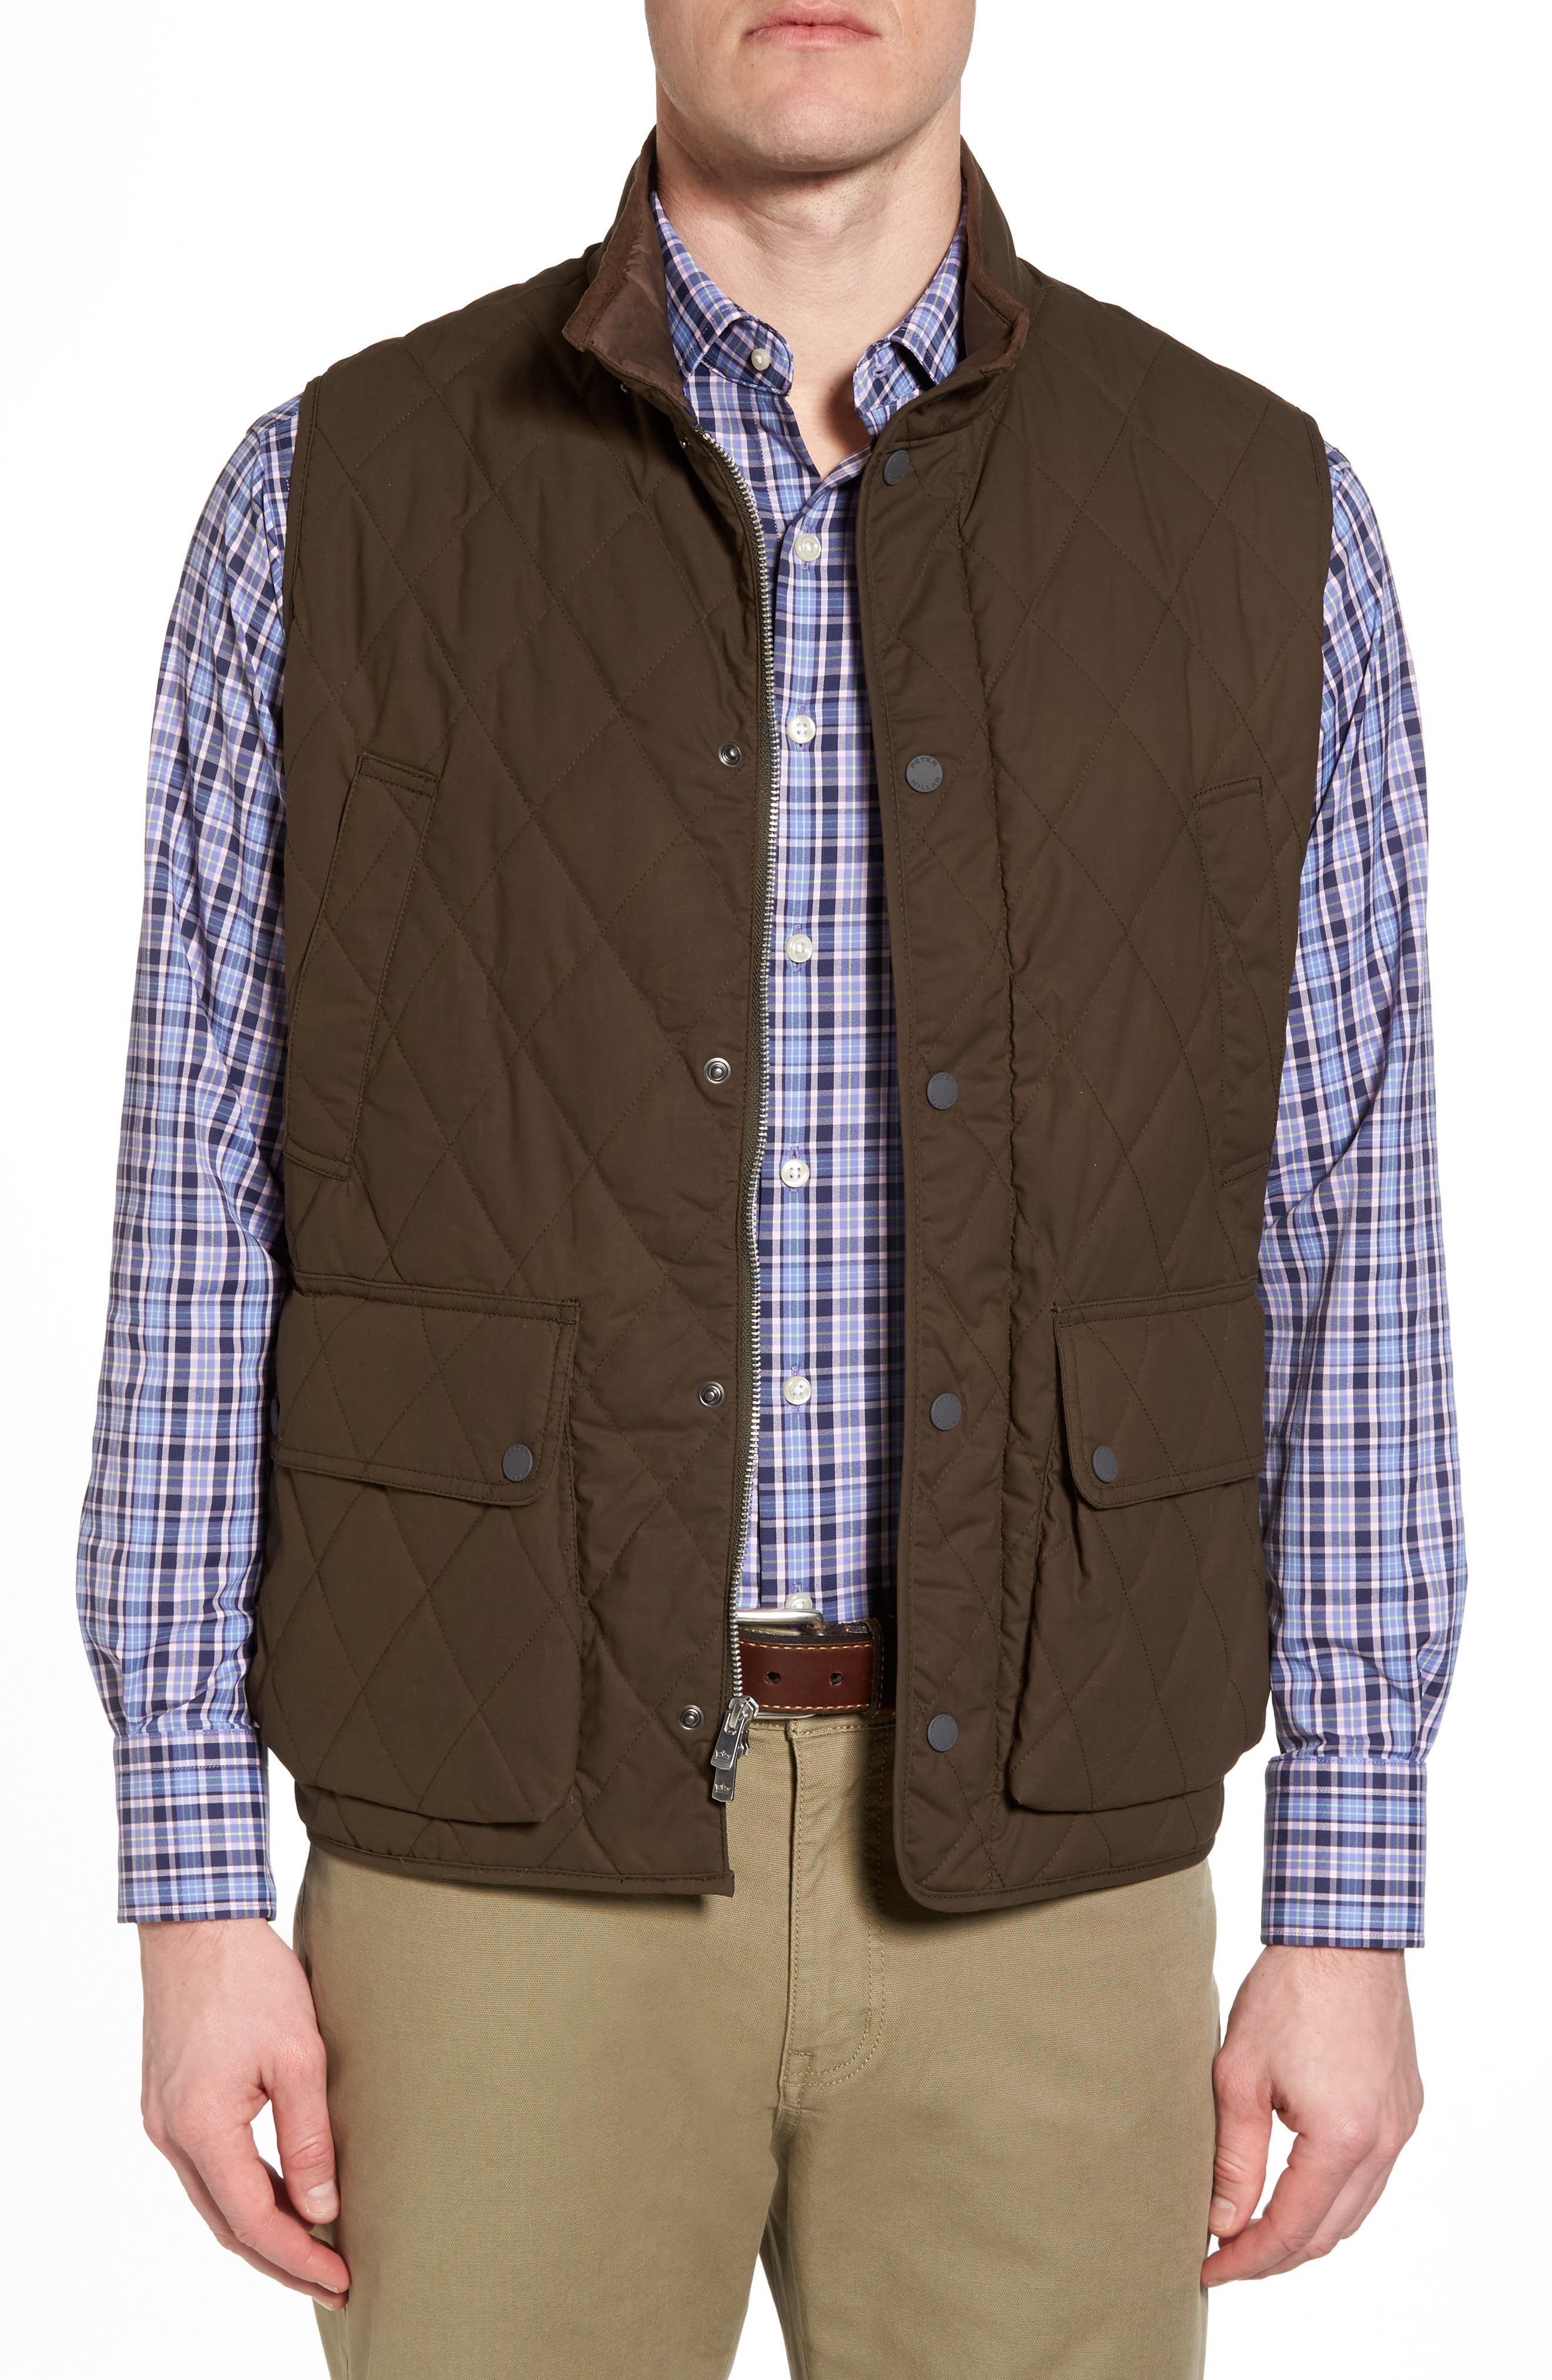 Keswick Waxed Cotton Quilted Vest,                             Main thumbnail 1, color,                             Dark Military